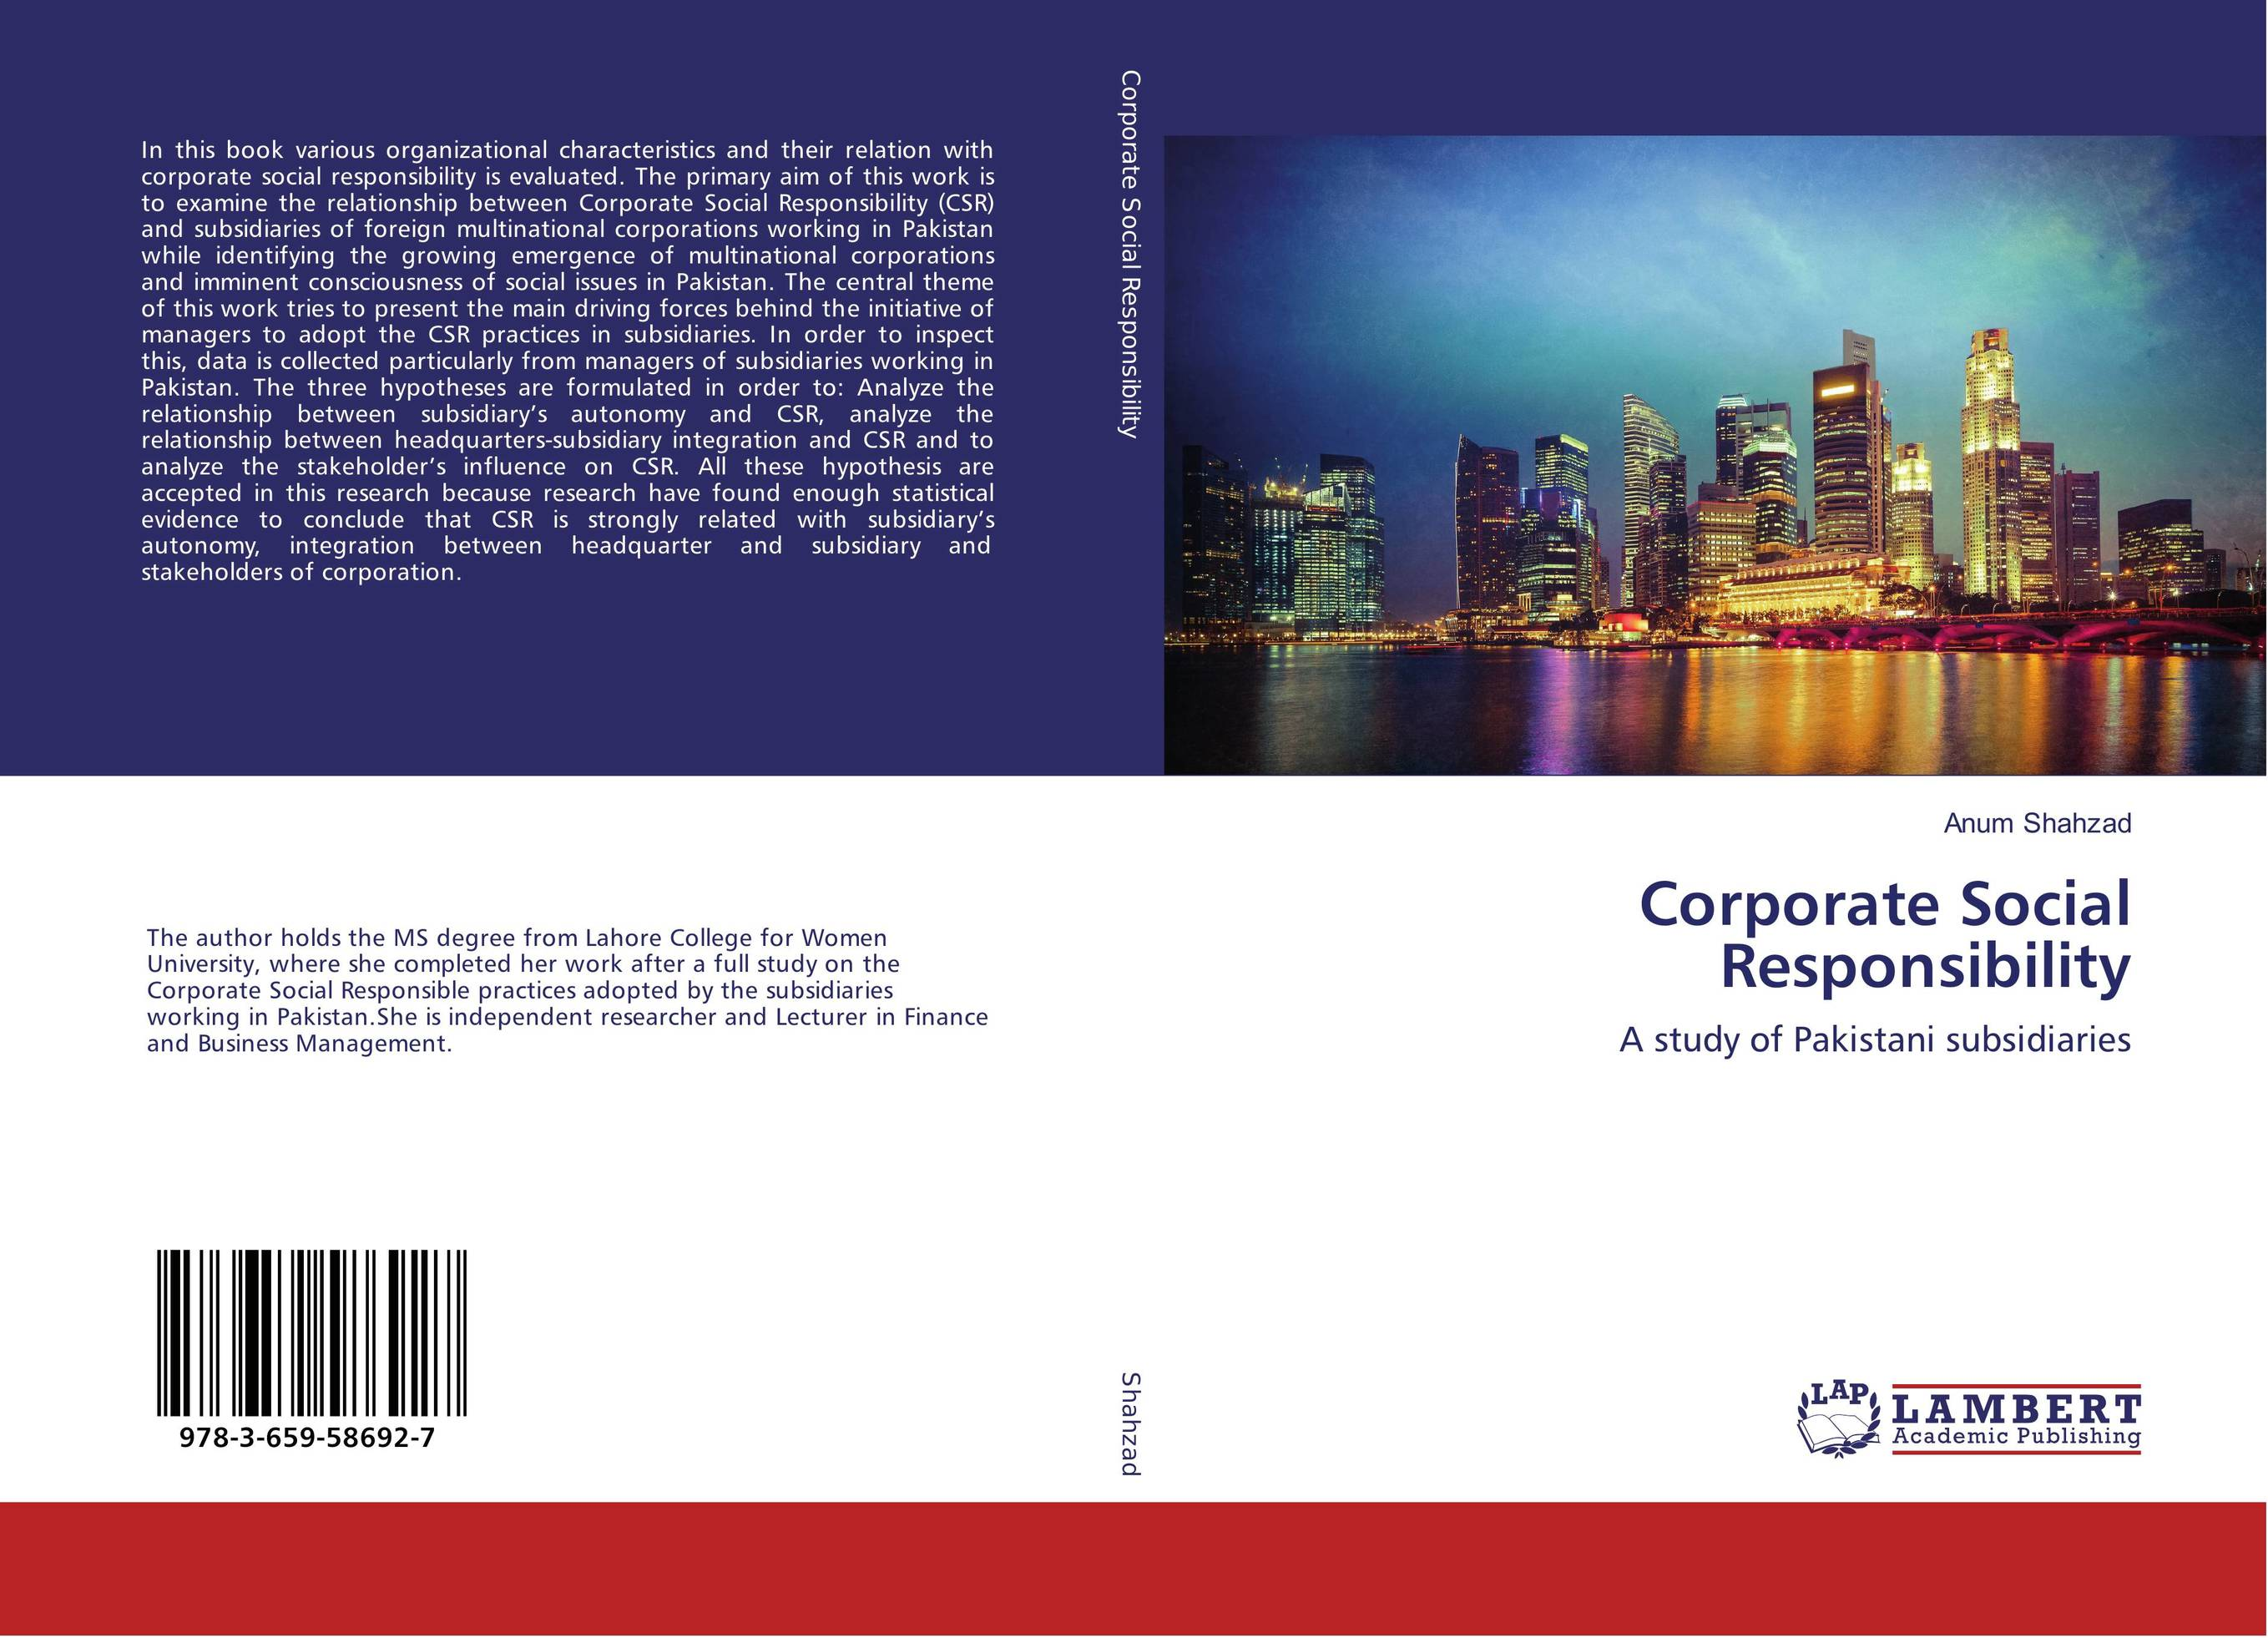 an analysis of corporate social responsibility in eiti Leadership, ethics and social responsibility: csr analysis assignment purpose of this research is to critically analyse and evaluate the corporate social responsibility (csr) policies that the business cotton on group (cog) employs.